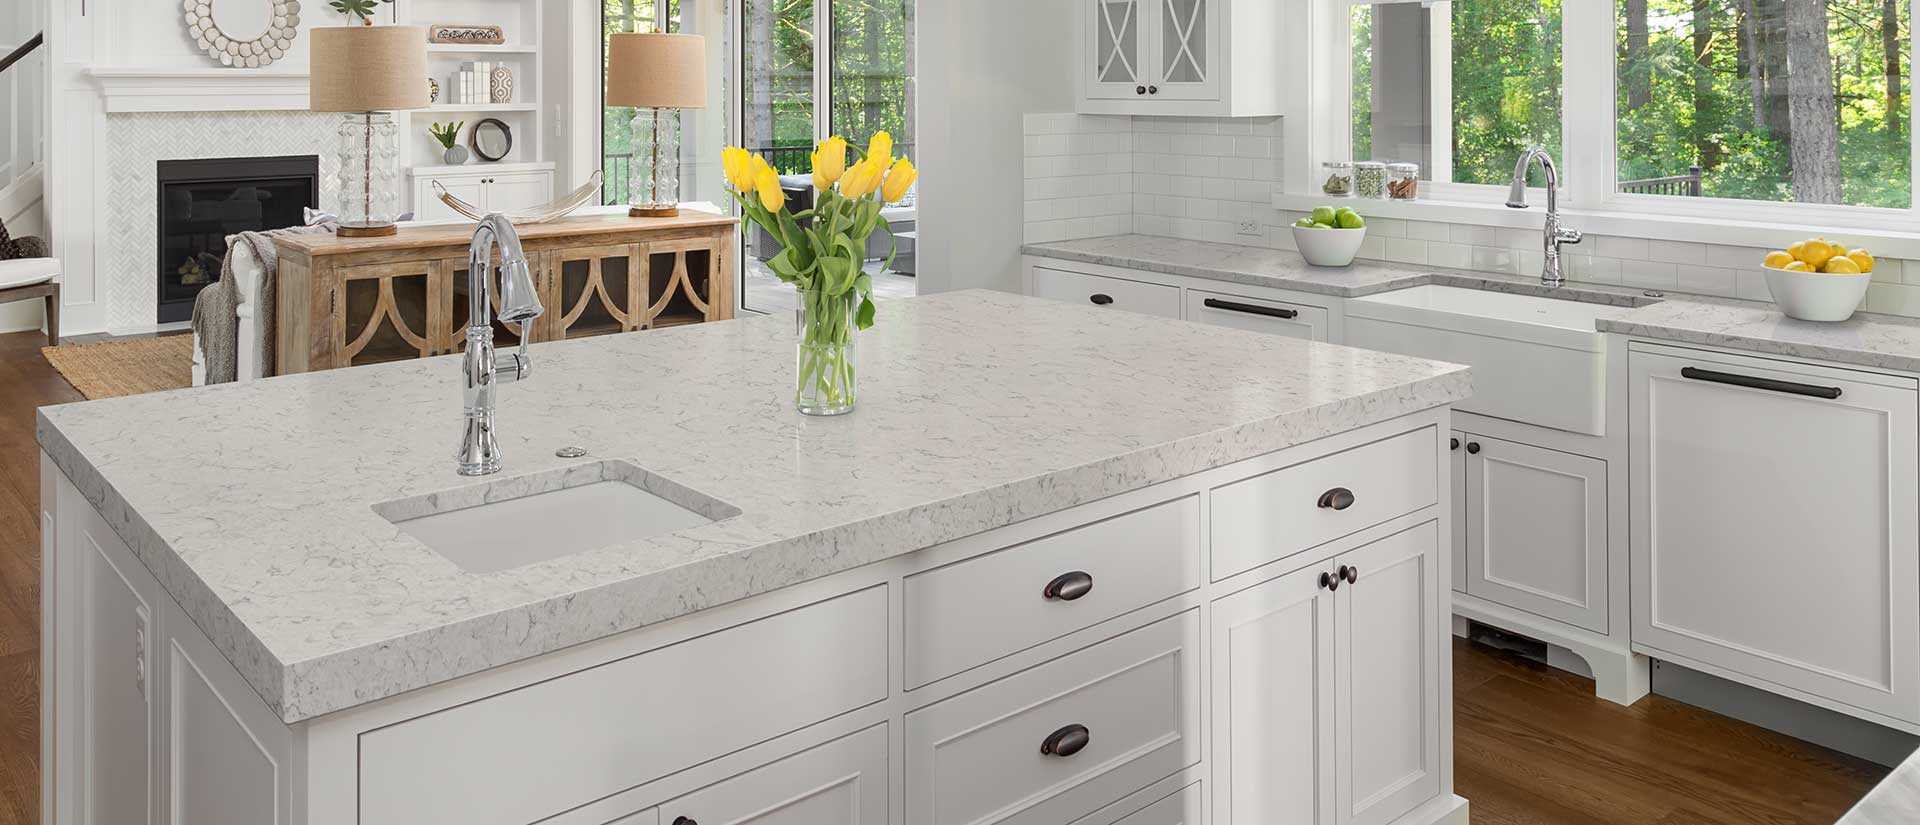 Looking For A Clean Looking Countertop That S Perfect For A White Themed Kitchen